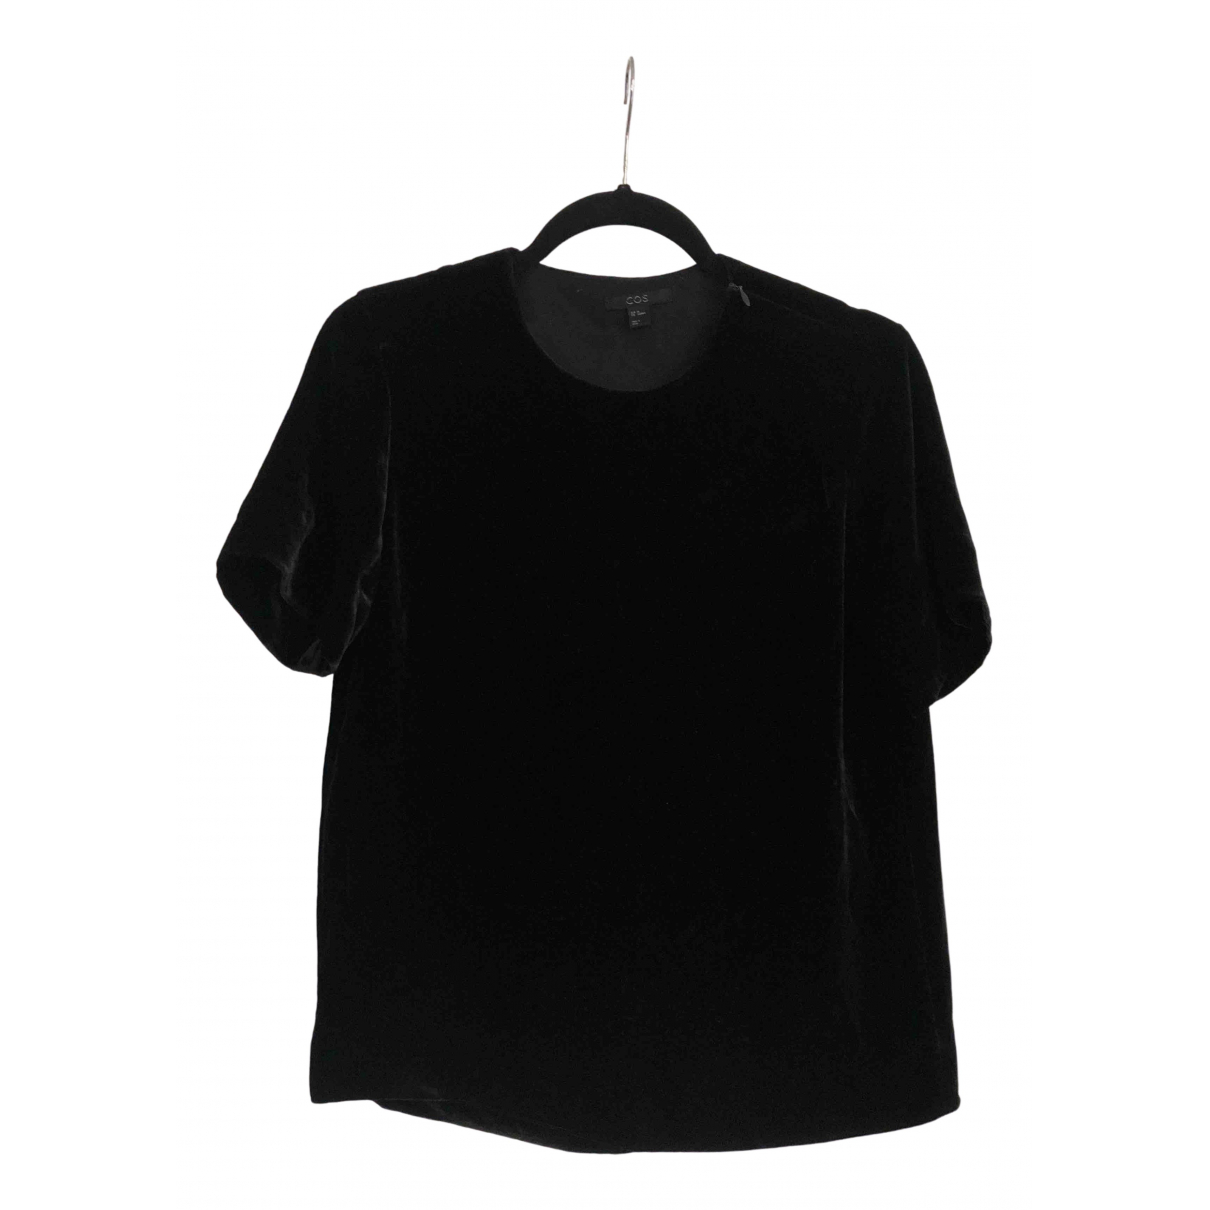 Cos \N Black  top for Women 34 FR